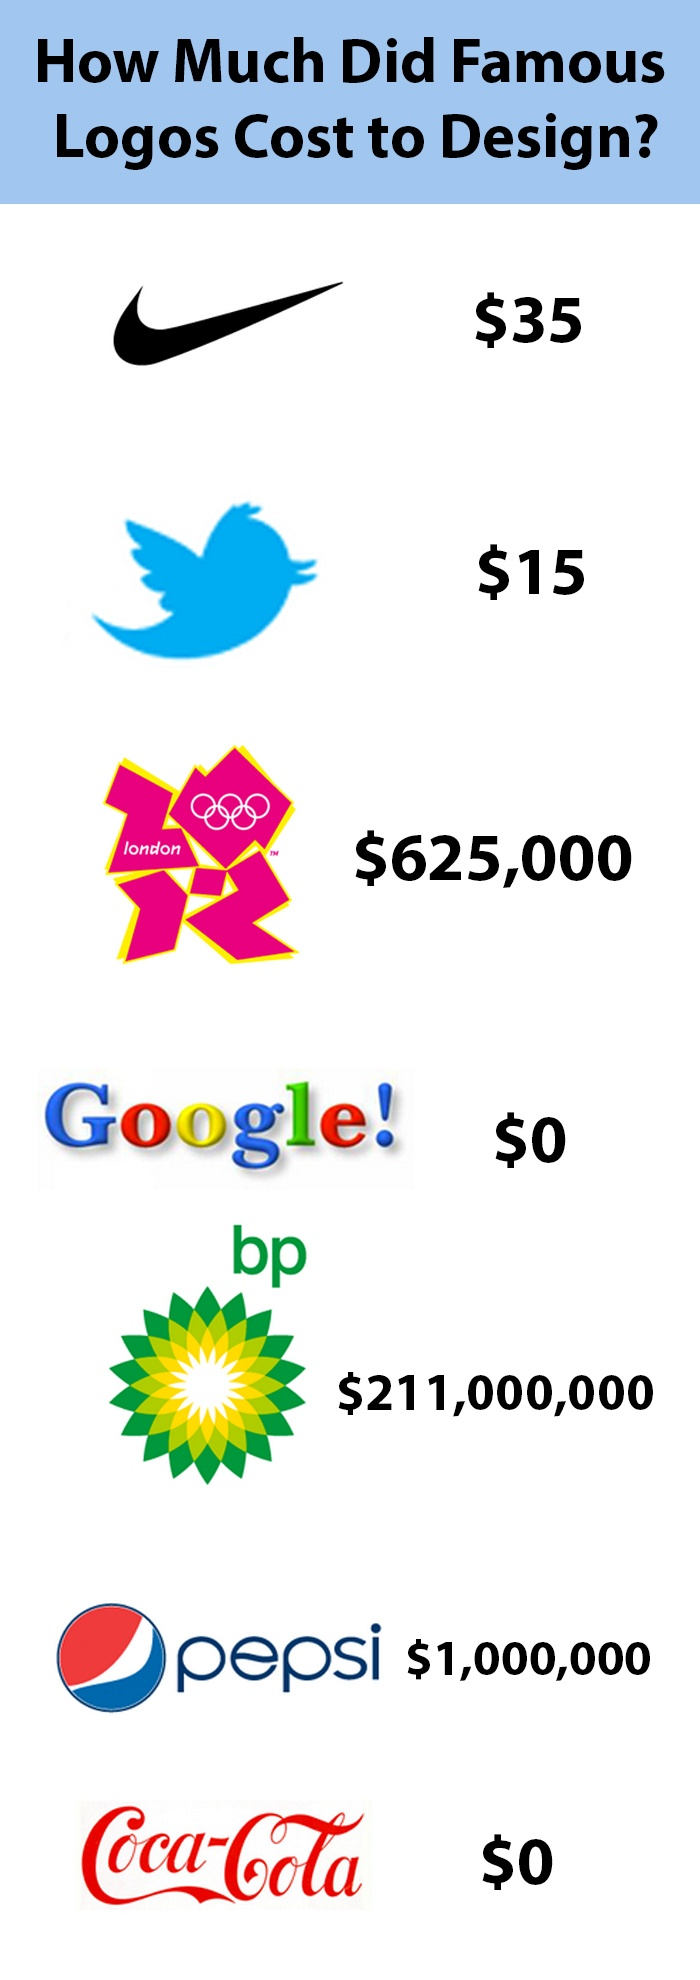 Famous logos and their design costs.